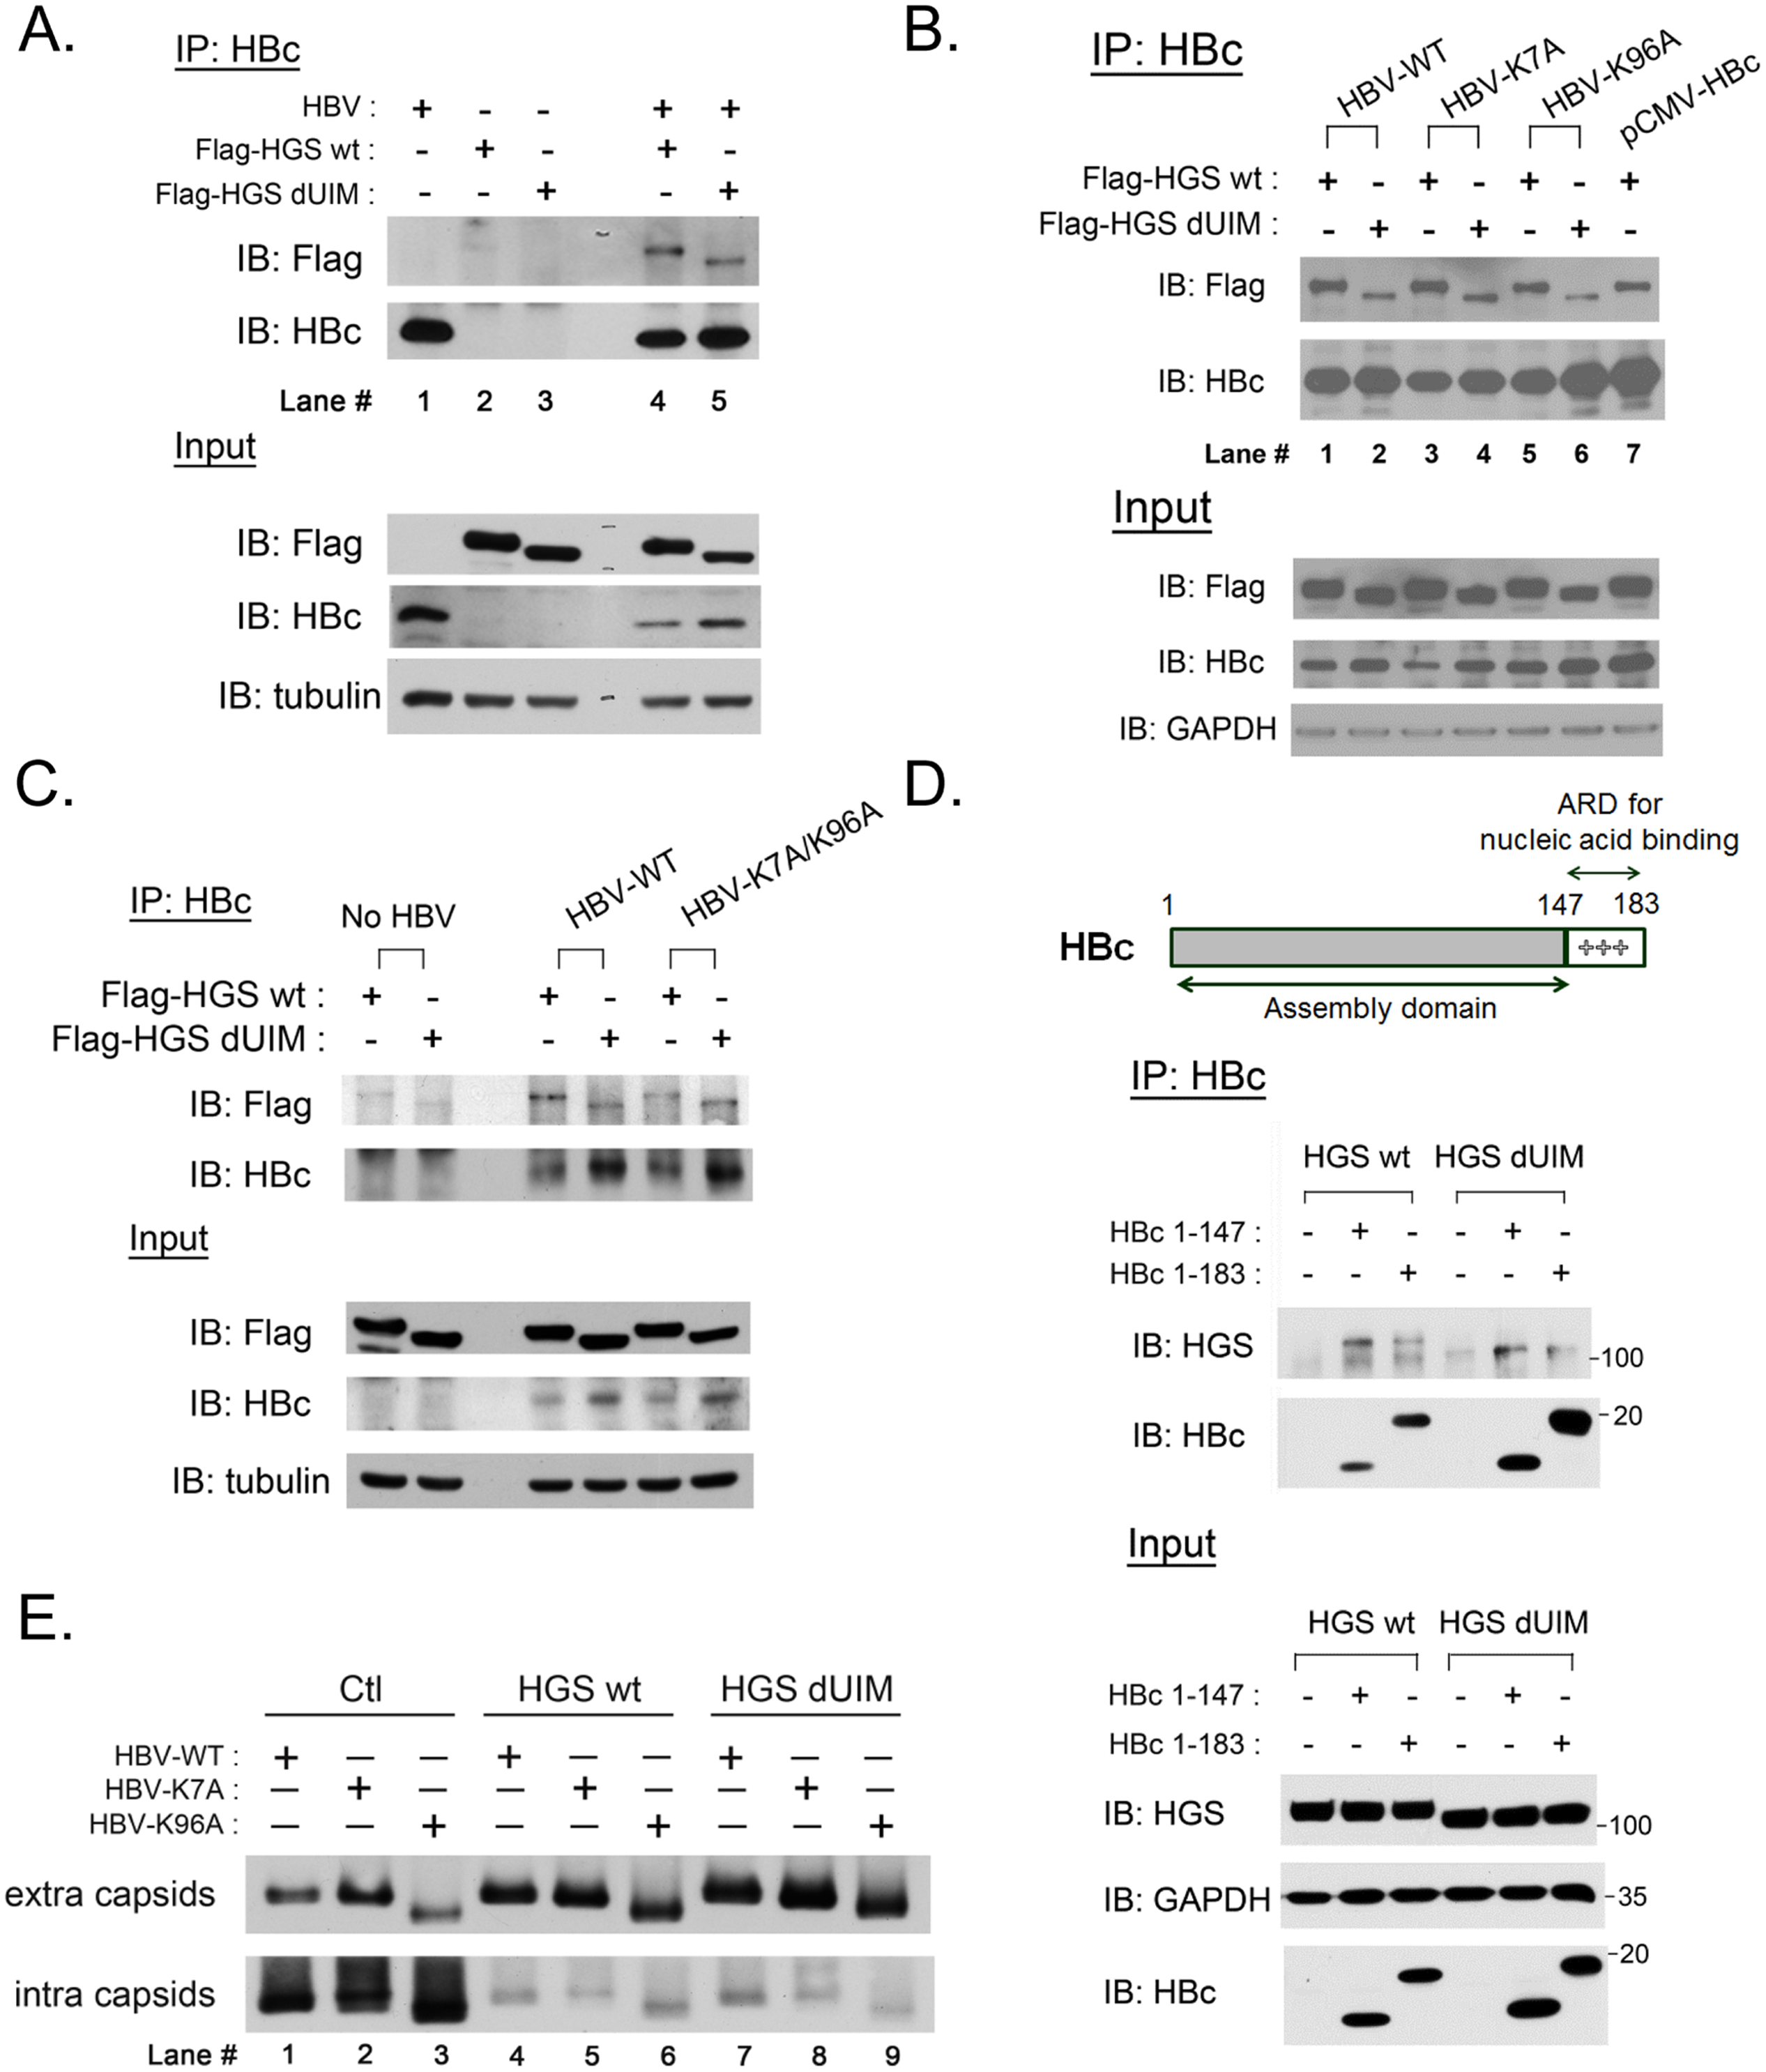 ESCRT-0 protein HGS associated with HBV core protein through an ubiquitin-independent recognition.